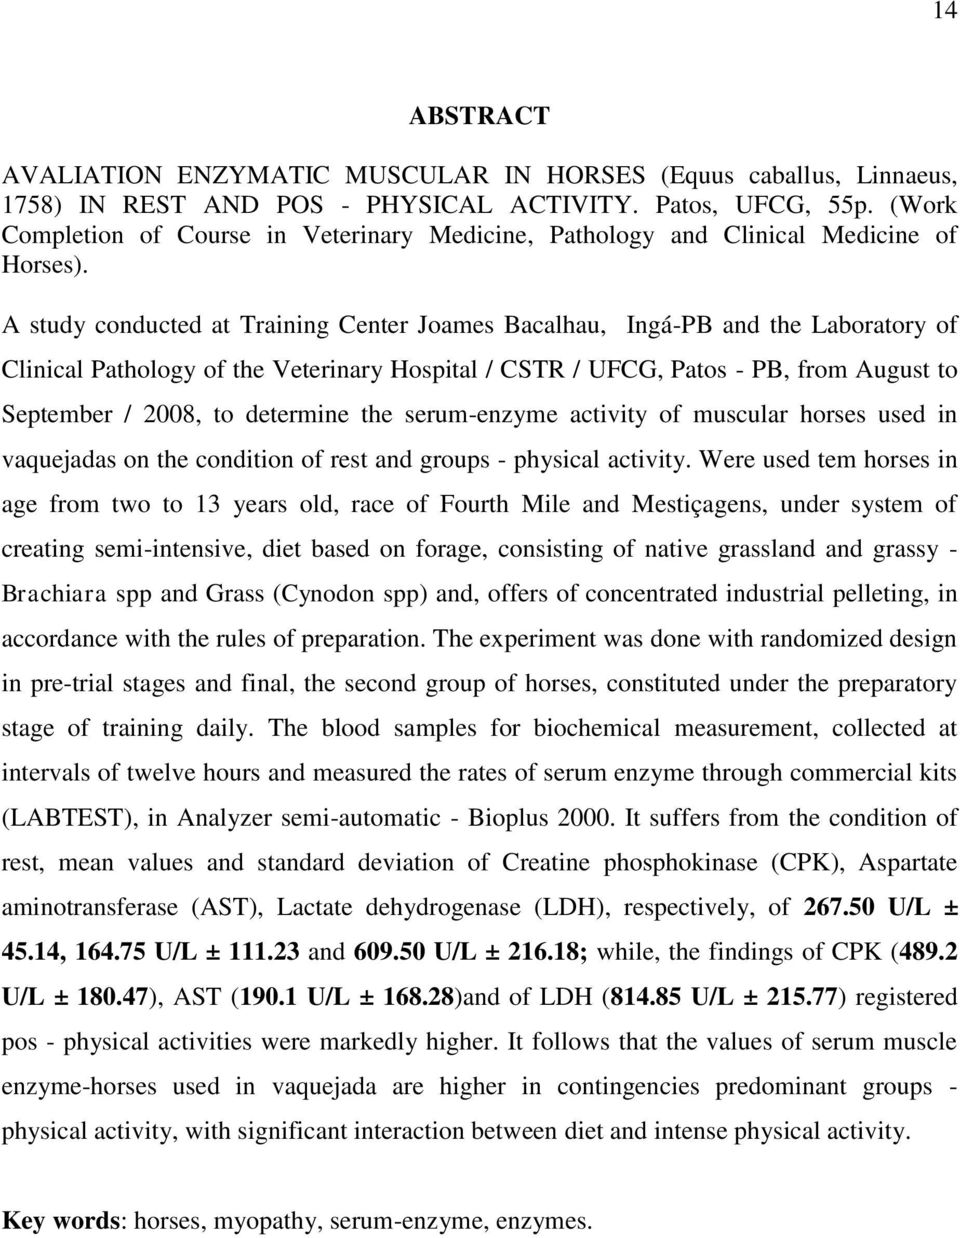 A study conducted at Training Center Joames Bacalhau, Ingá-PB and the Laboratory of Clinical Pathology of the Veterinary Hospital / CSTR / UFCG, Patos - PB, from August to September / 2008, to